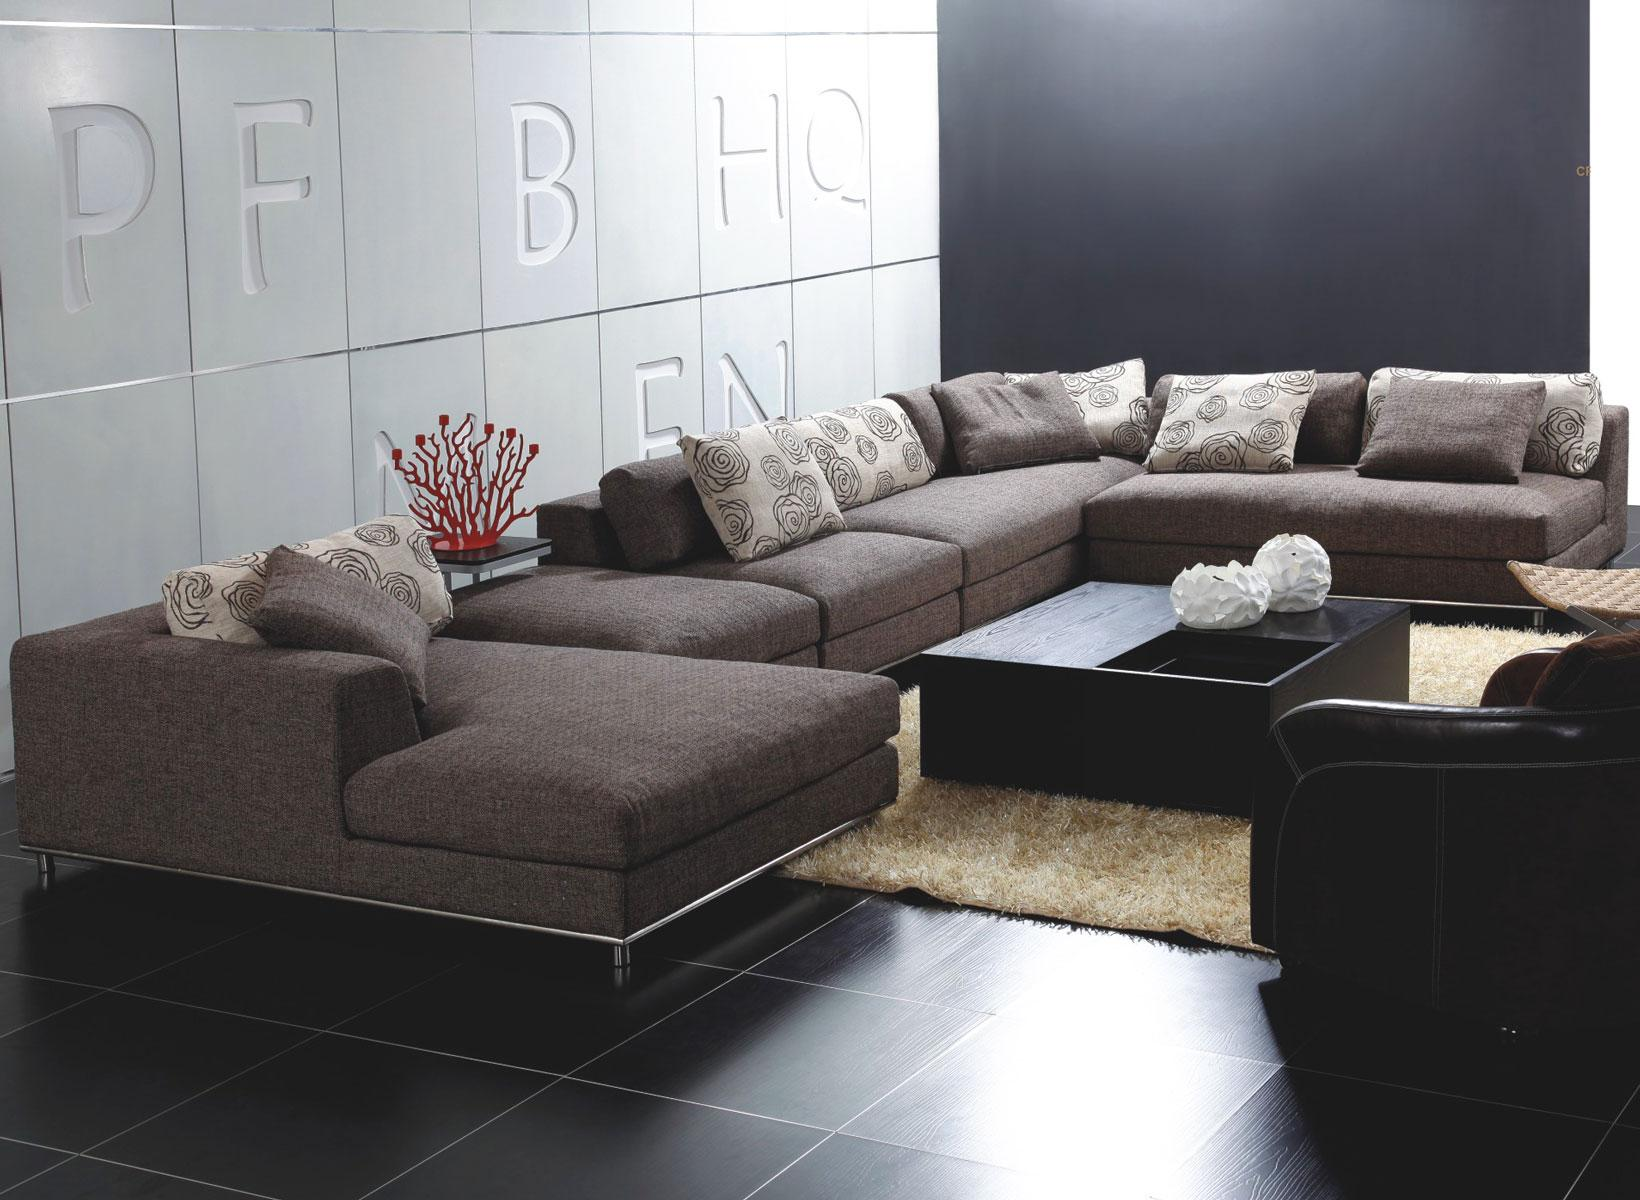 big cheap sectional sofas in tan on black ceramics floor plus yellow carpet and black table for living room decor ideas